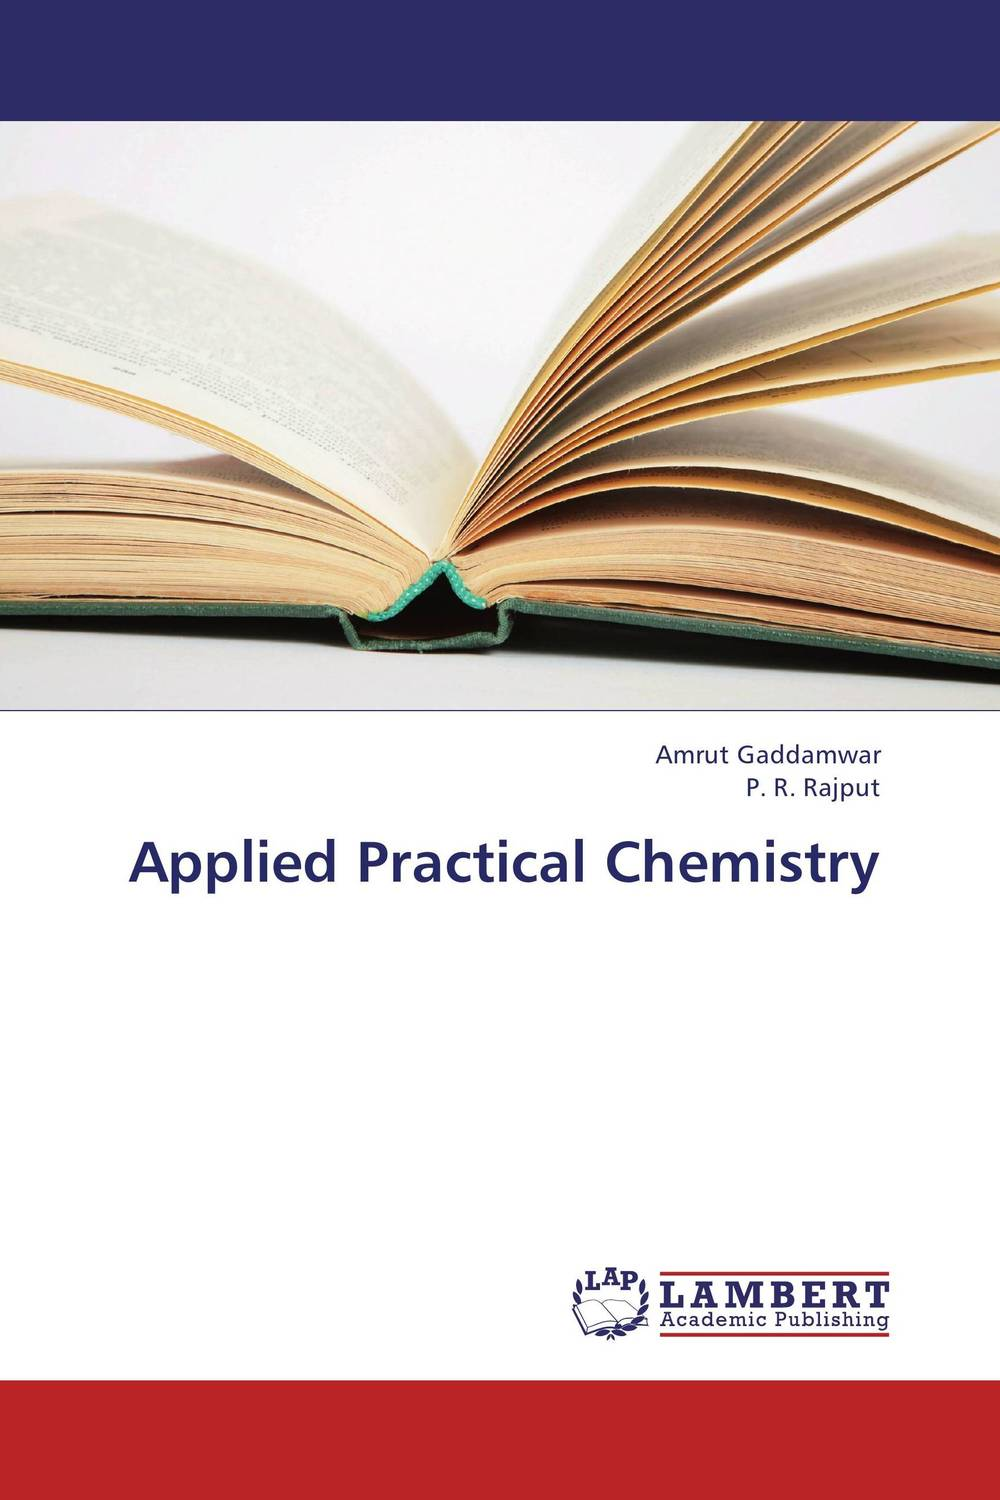 Applied Practical Chemistry bruno pignataro ideas in chemistry and molecular sciences where chemistry meets life